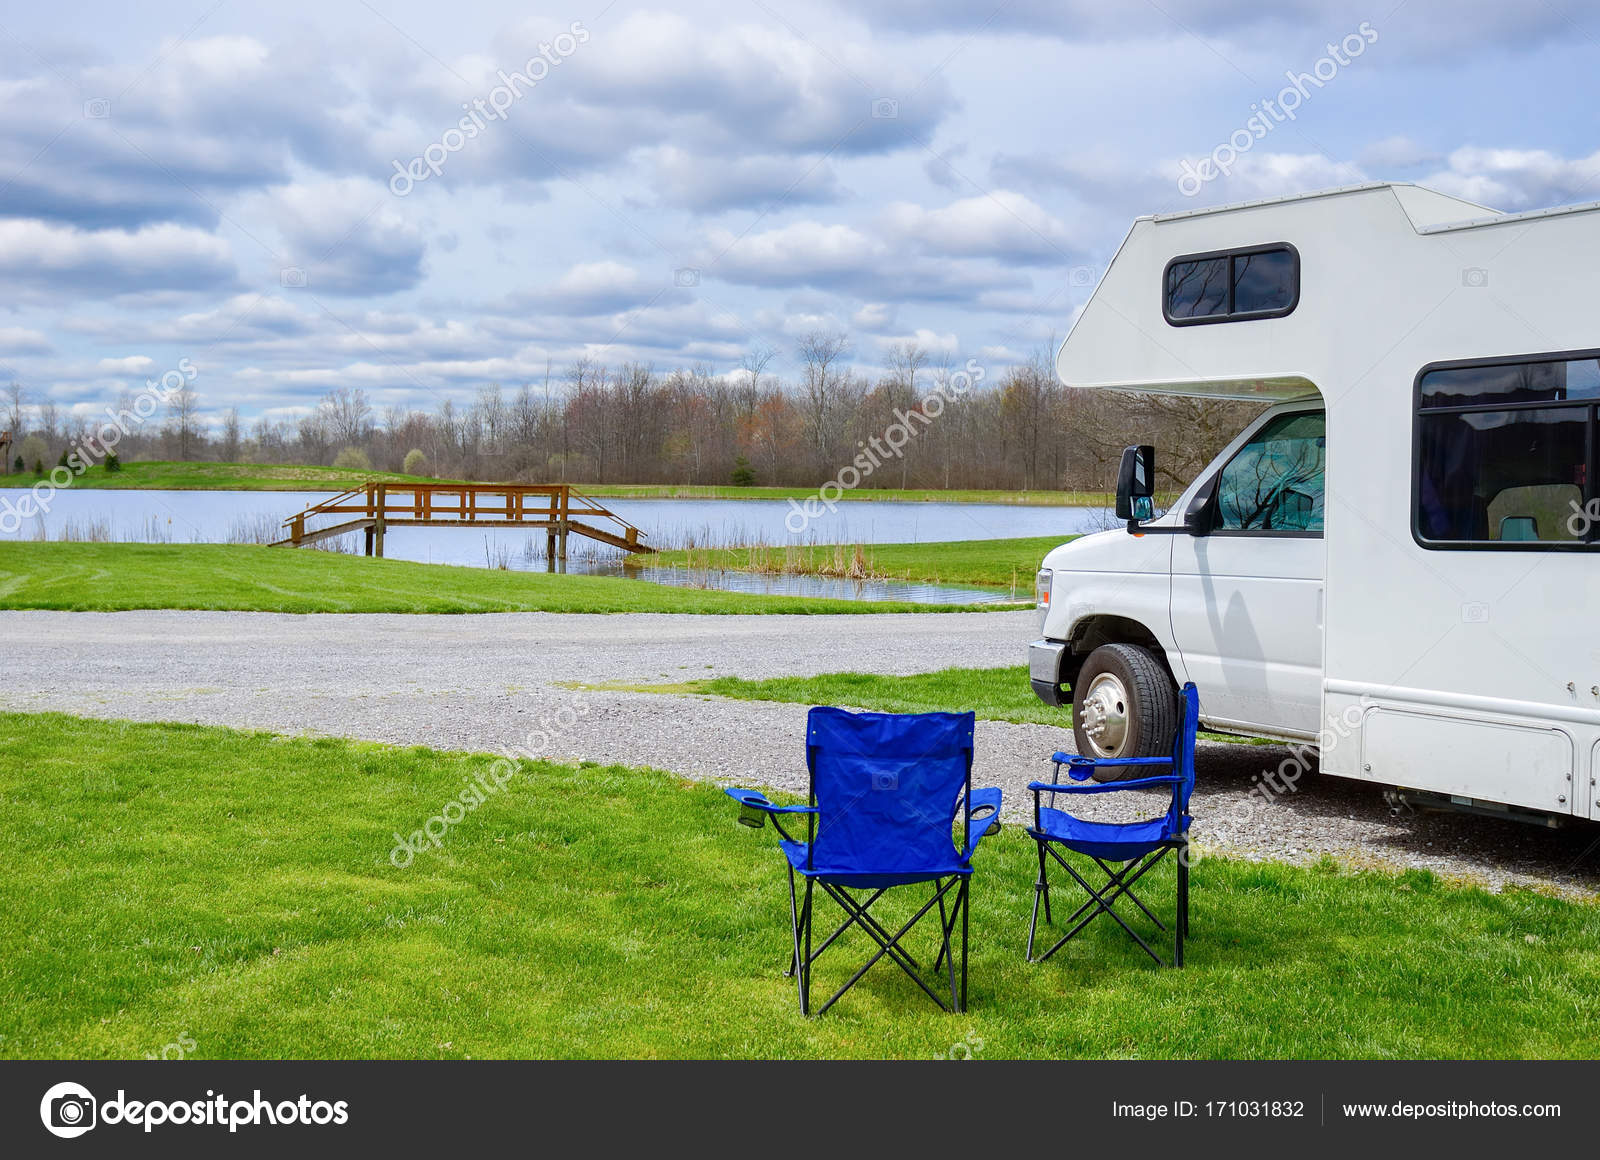 RV (camper) And Chairs In Camping, Family Vacation Travel, Holiday Trip In